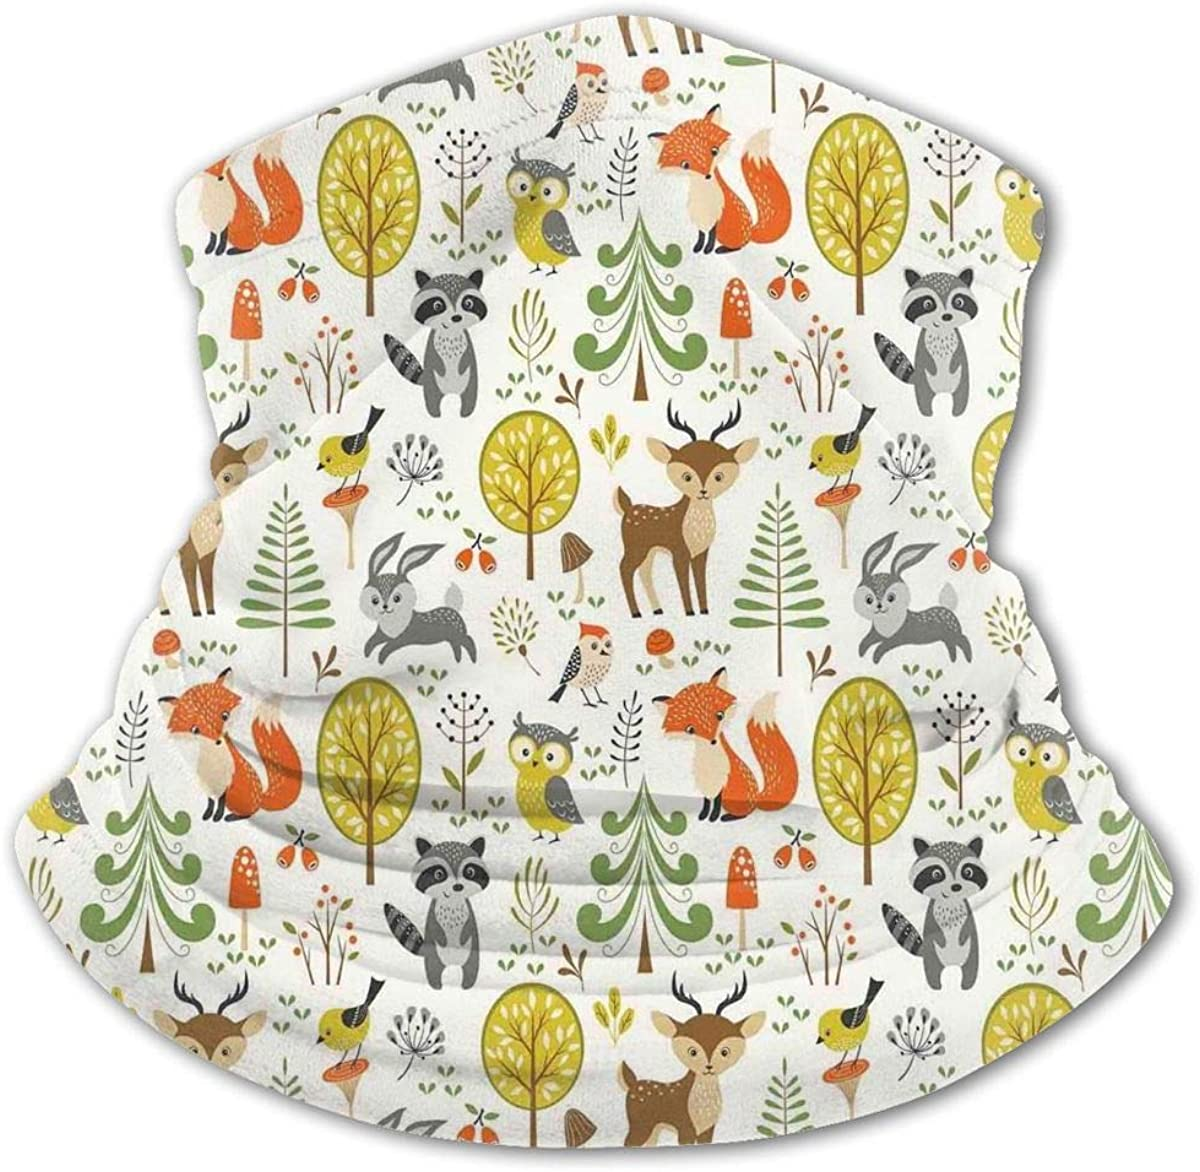 Birds Owls Fox Bunny Deer Raccoon Mushroom Kids Bandanas Reusable Washable Neck Gaiter Balaclava,Half Face Protective Masks